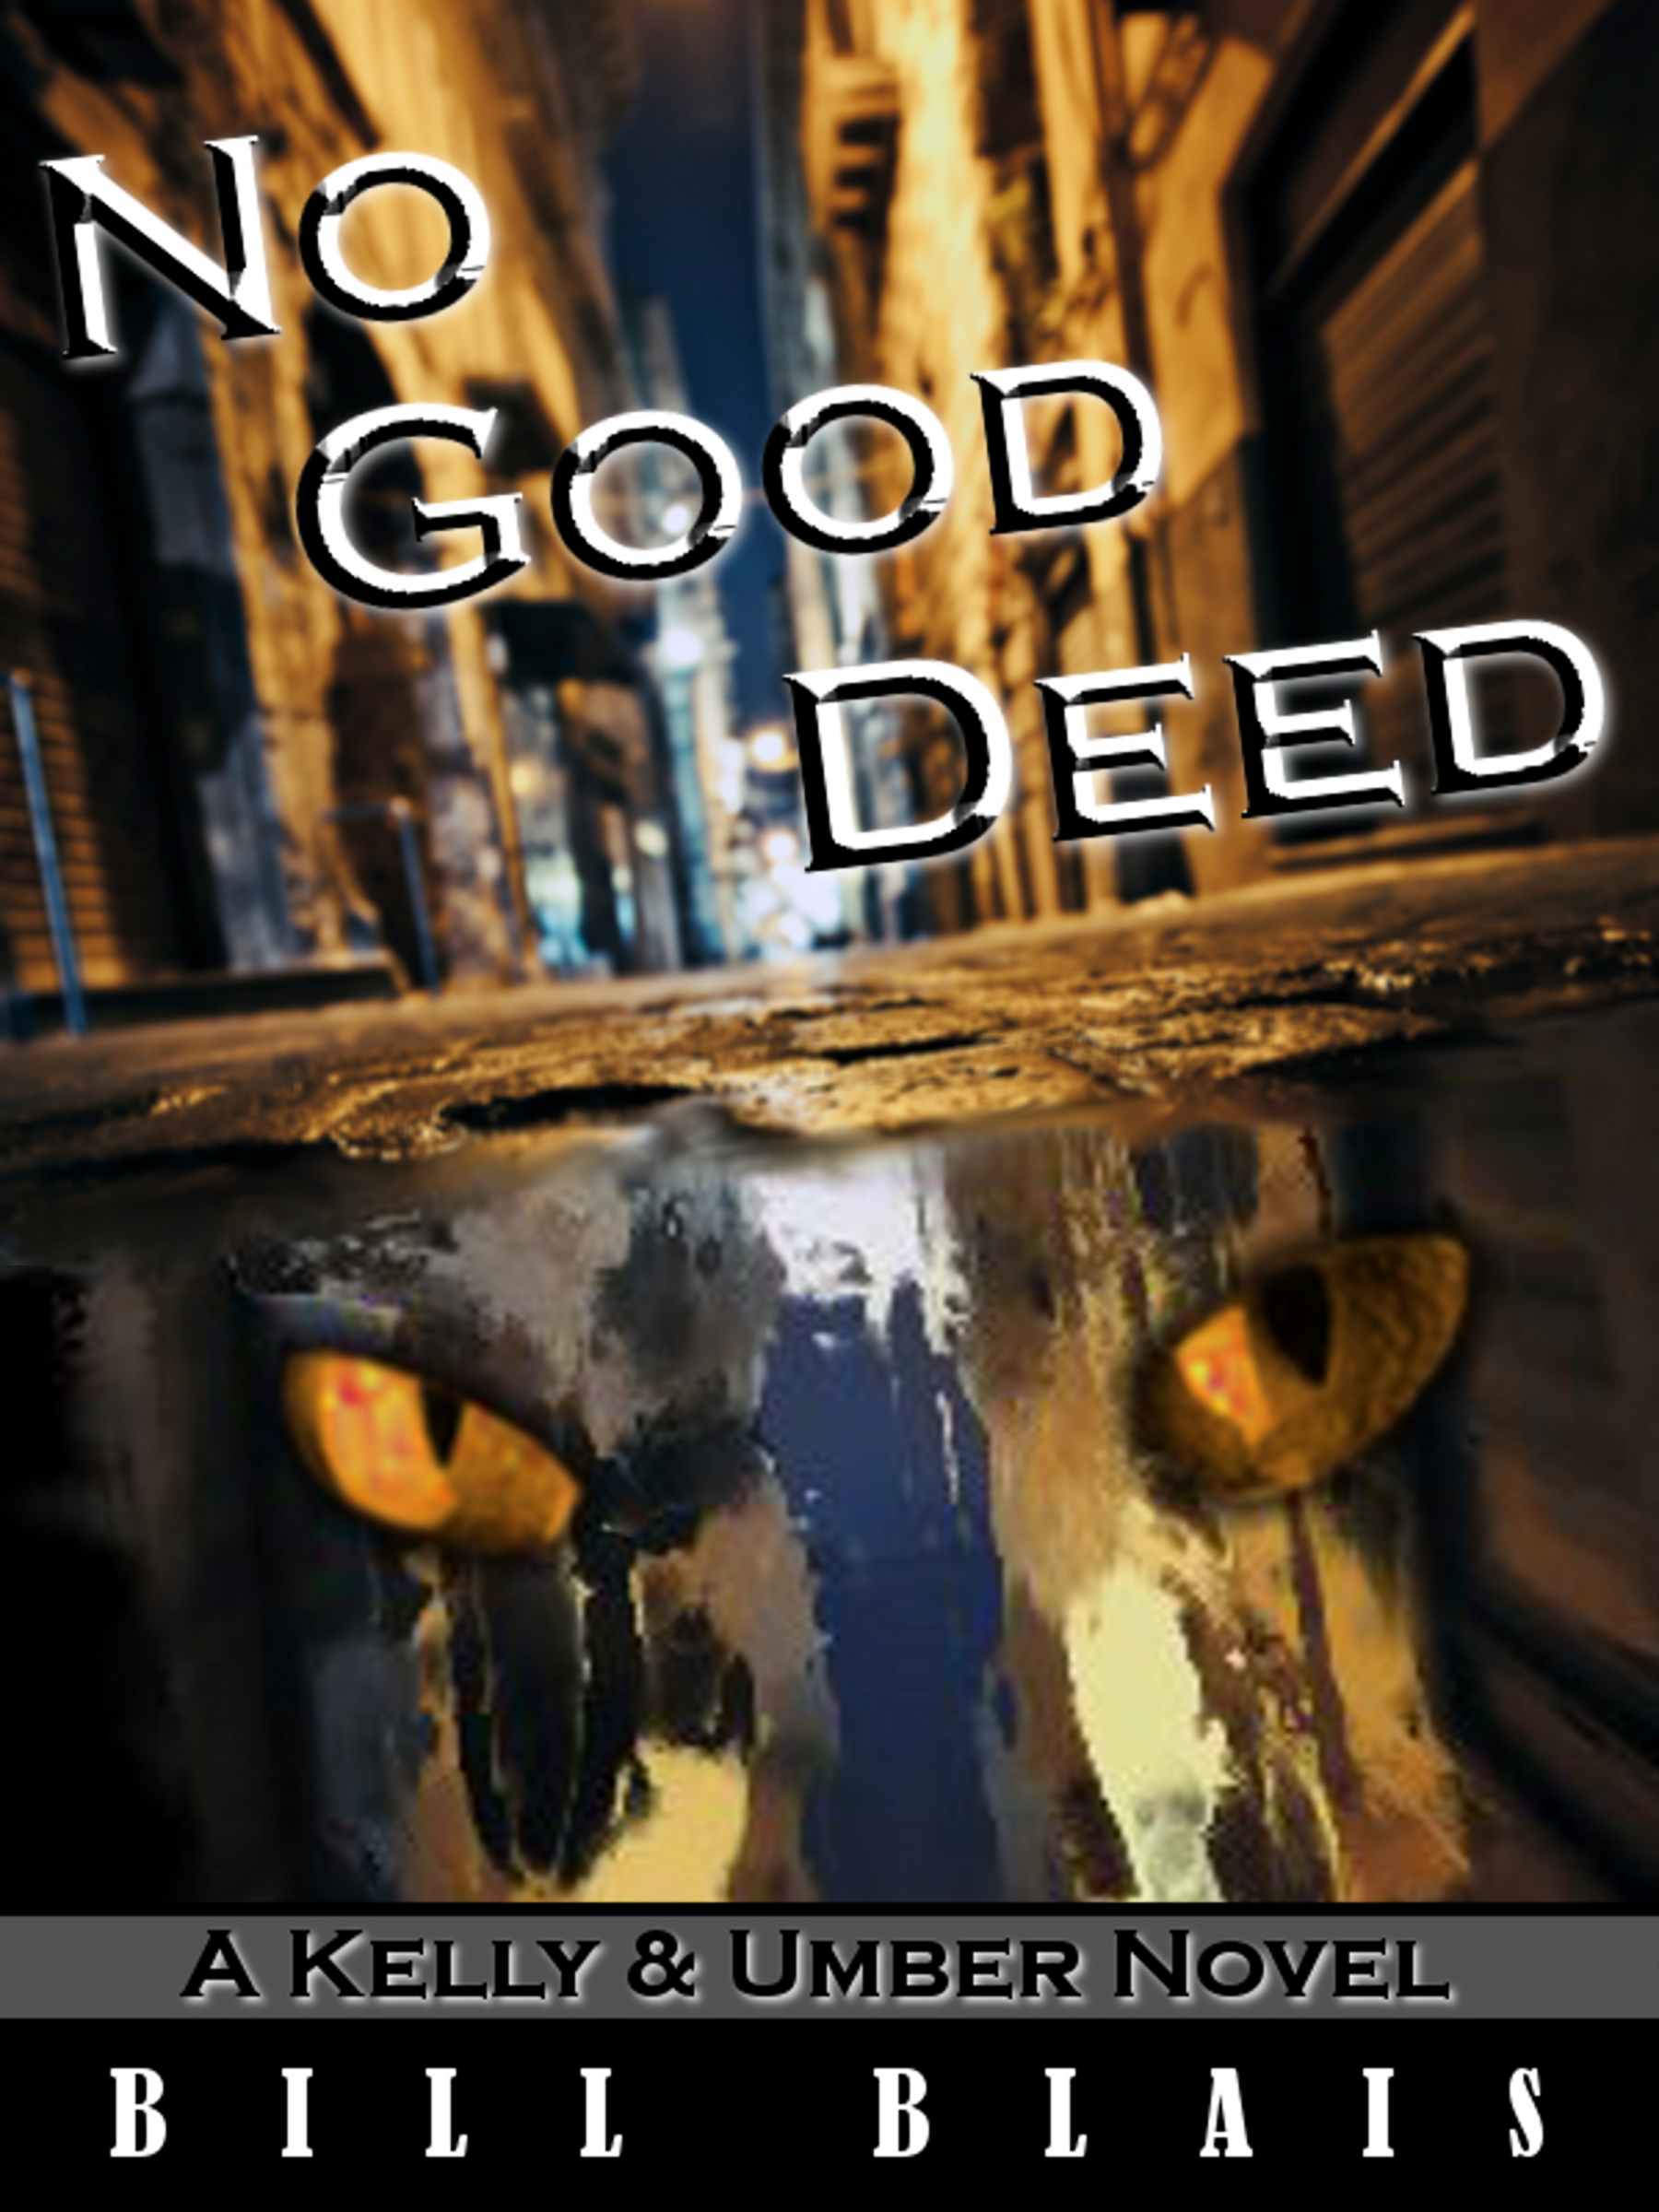 No Good Deed - Cover Image